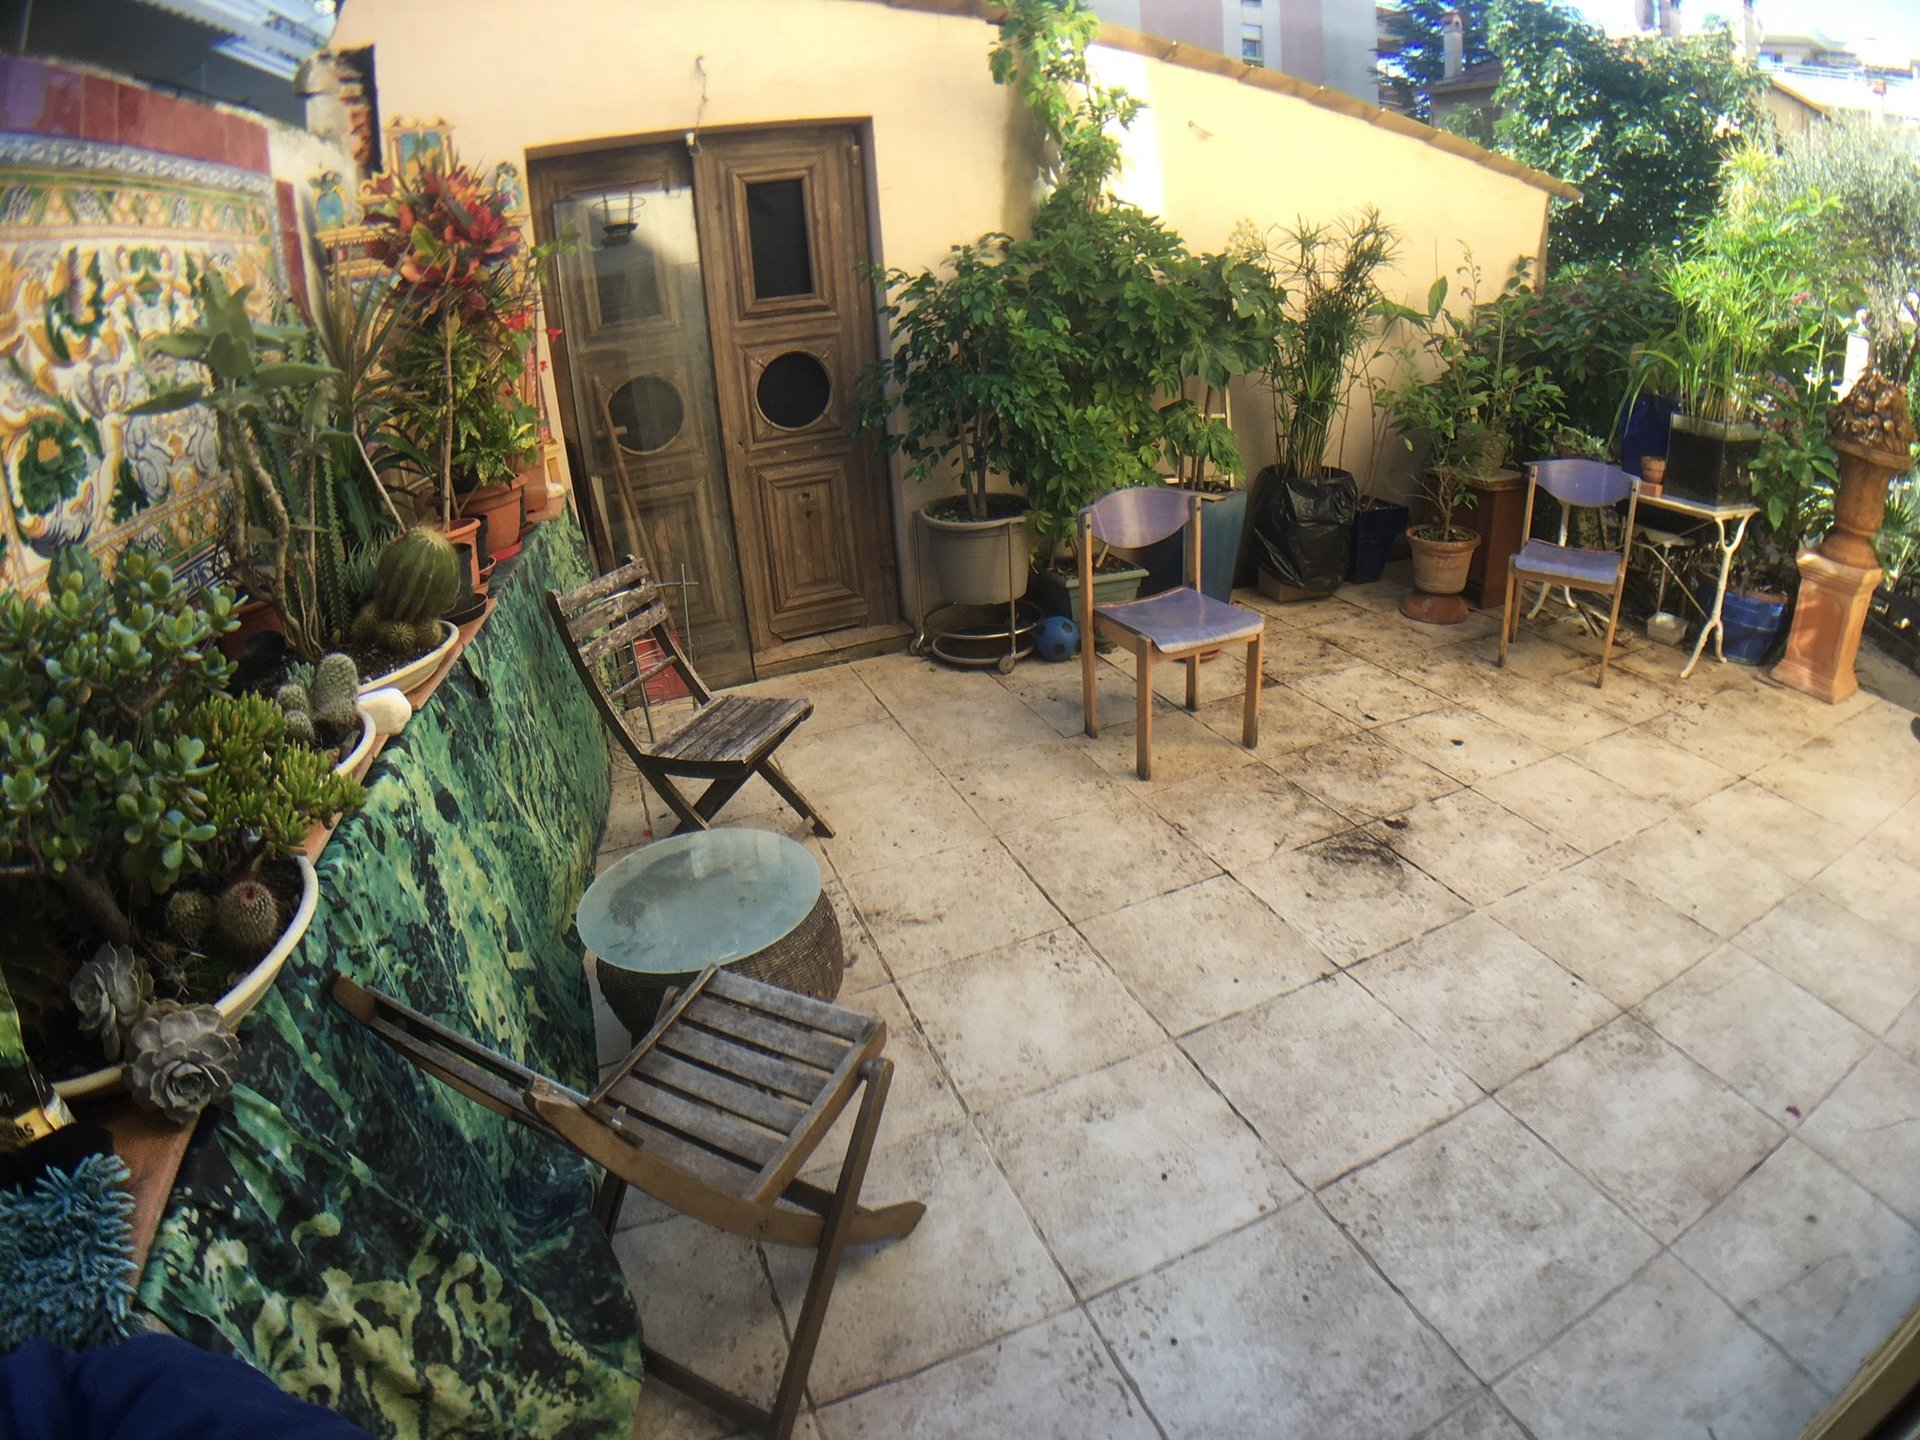 SALE 2 ROOMS IN HOUSE BOURGEOISE